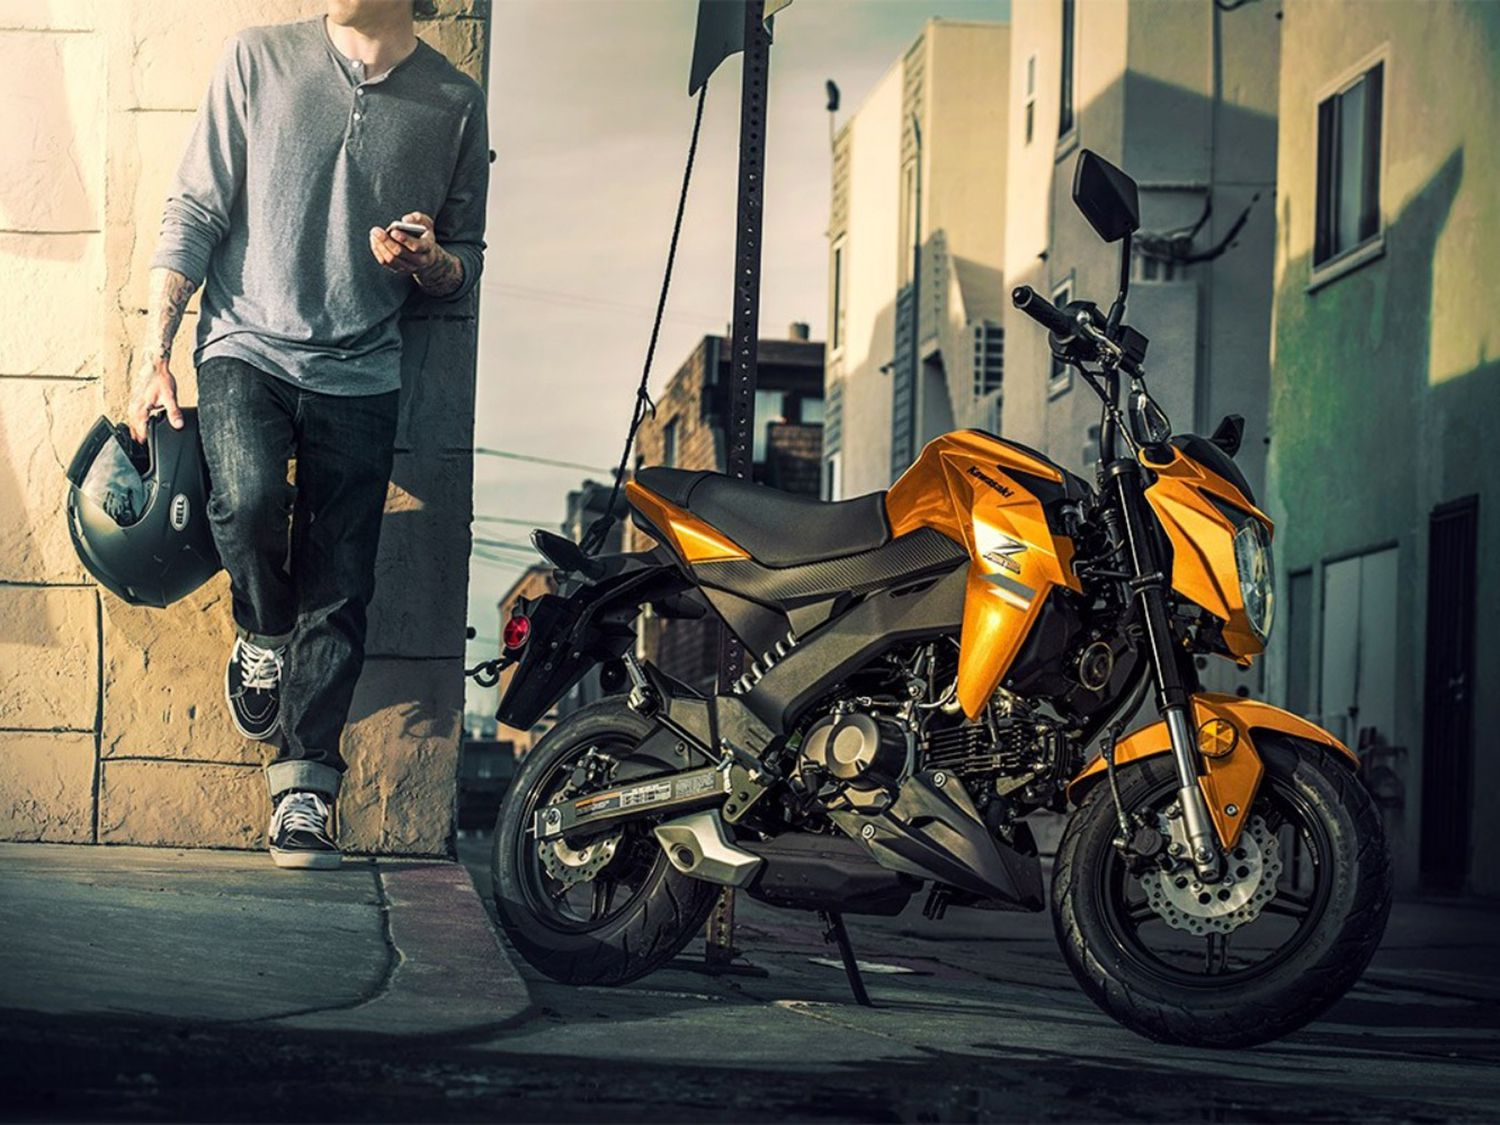 The Z125 takes the Grom's best attributes and puts its own spin on them, with a bigger tank, taller seat and greater lean angle.